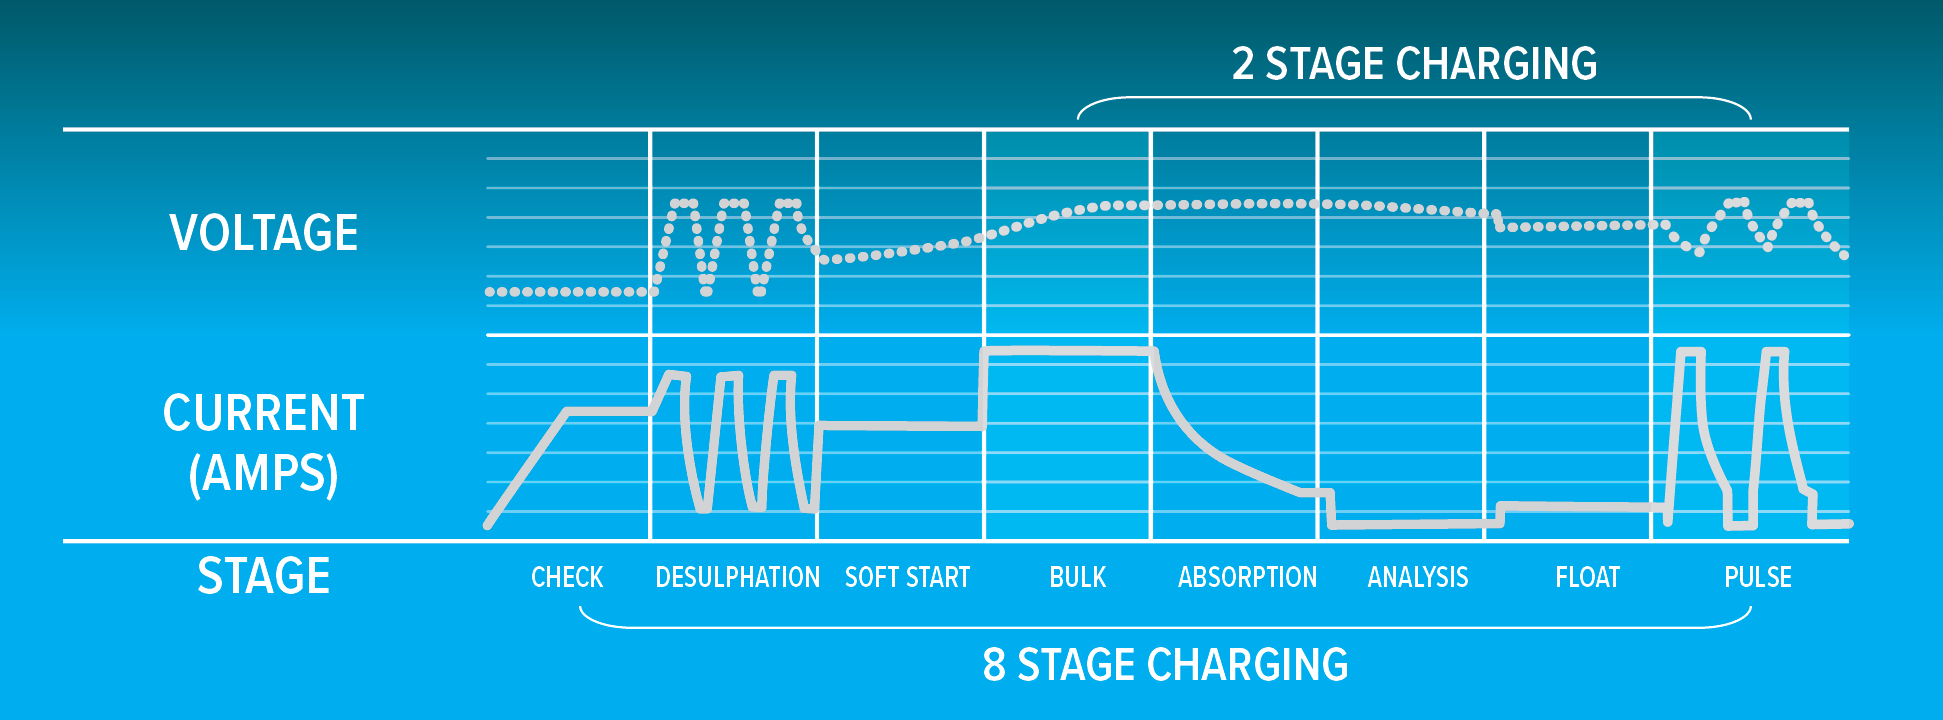 2 & 8 stage charging options